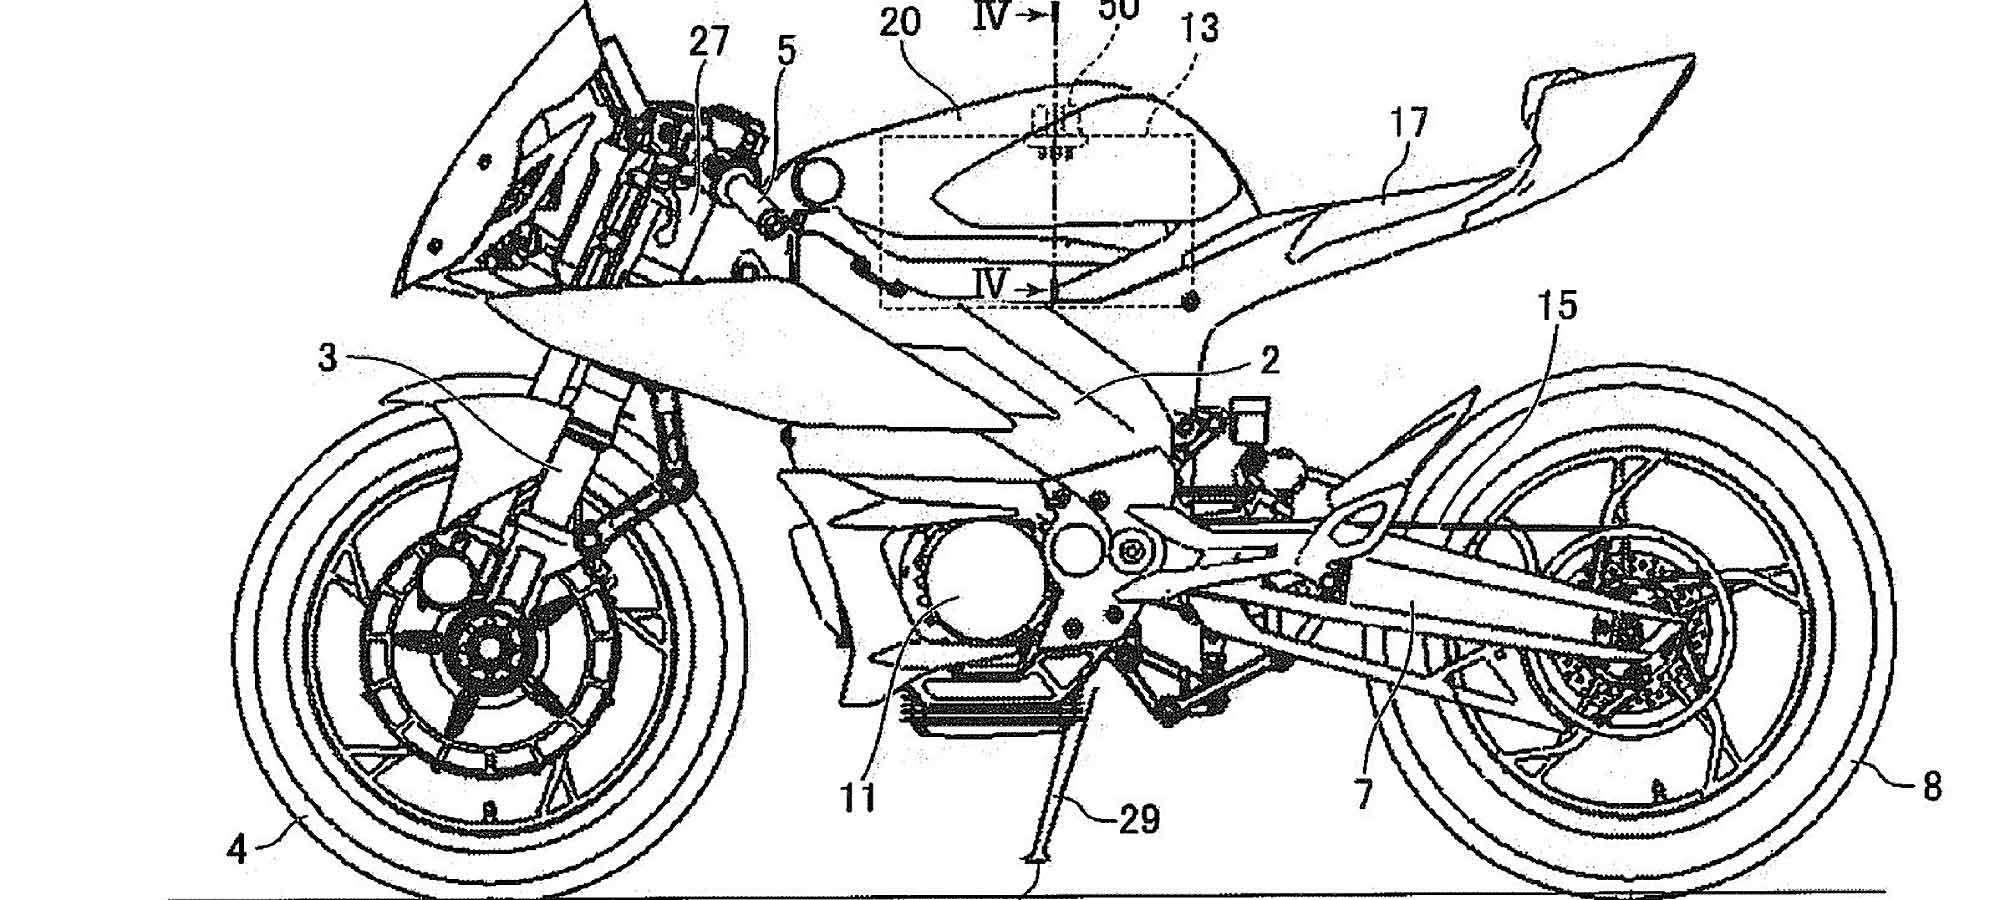 New Yamaha Designs Hint At Its Electric Future